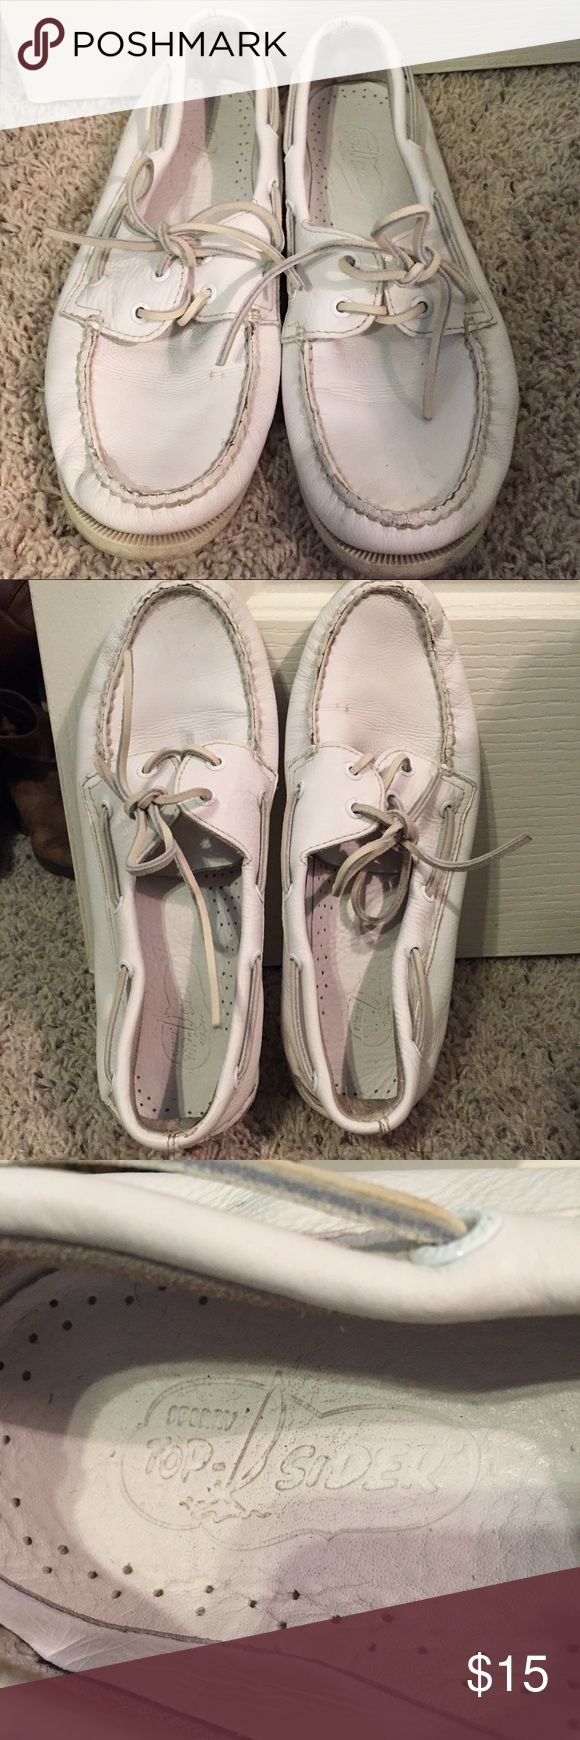 Sperry Top Siders White Sperry Top Siders! Men's size 11M. Could benefit from a cleaning, but in good shape. Make an offer! Sperry Top-Sider Shoes Boat Shoes